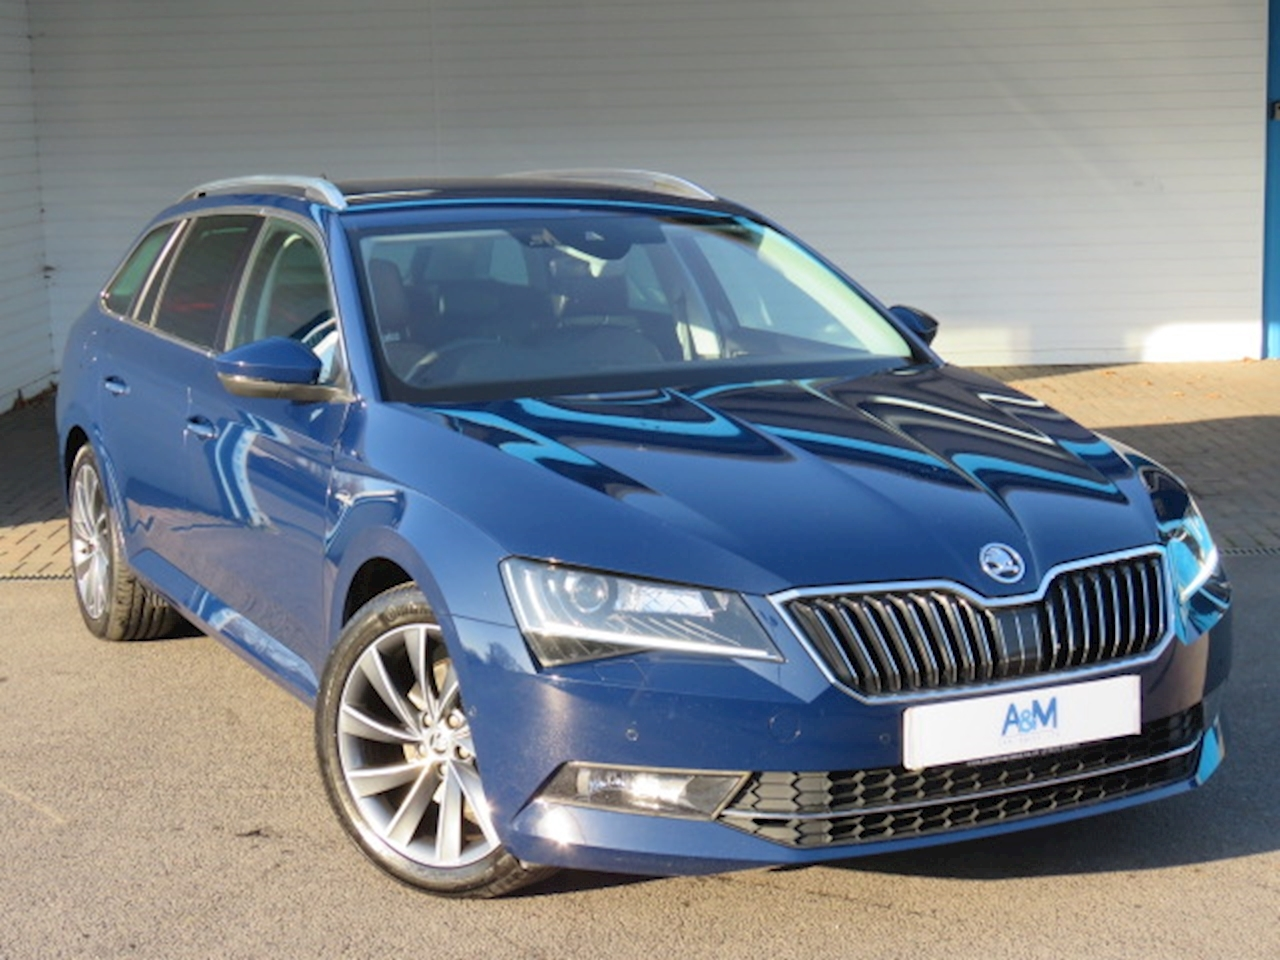 SKODA Superb Laurin & Klement 2.0 5dr Estate Manual Diesel